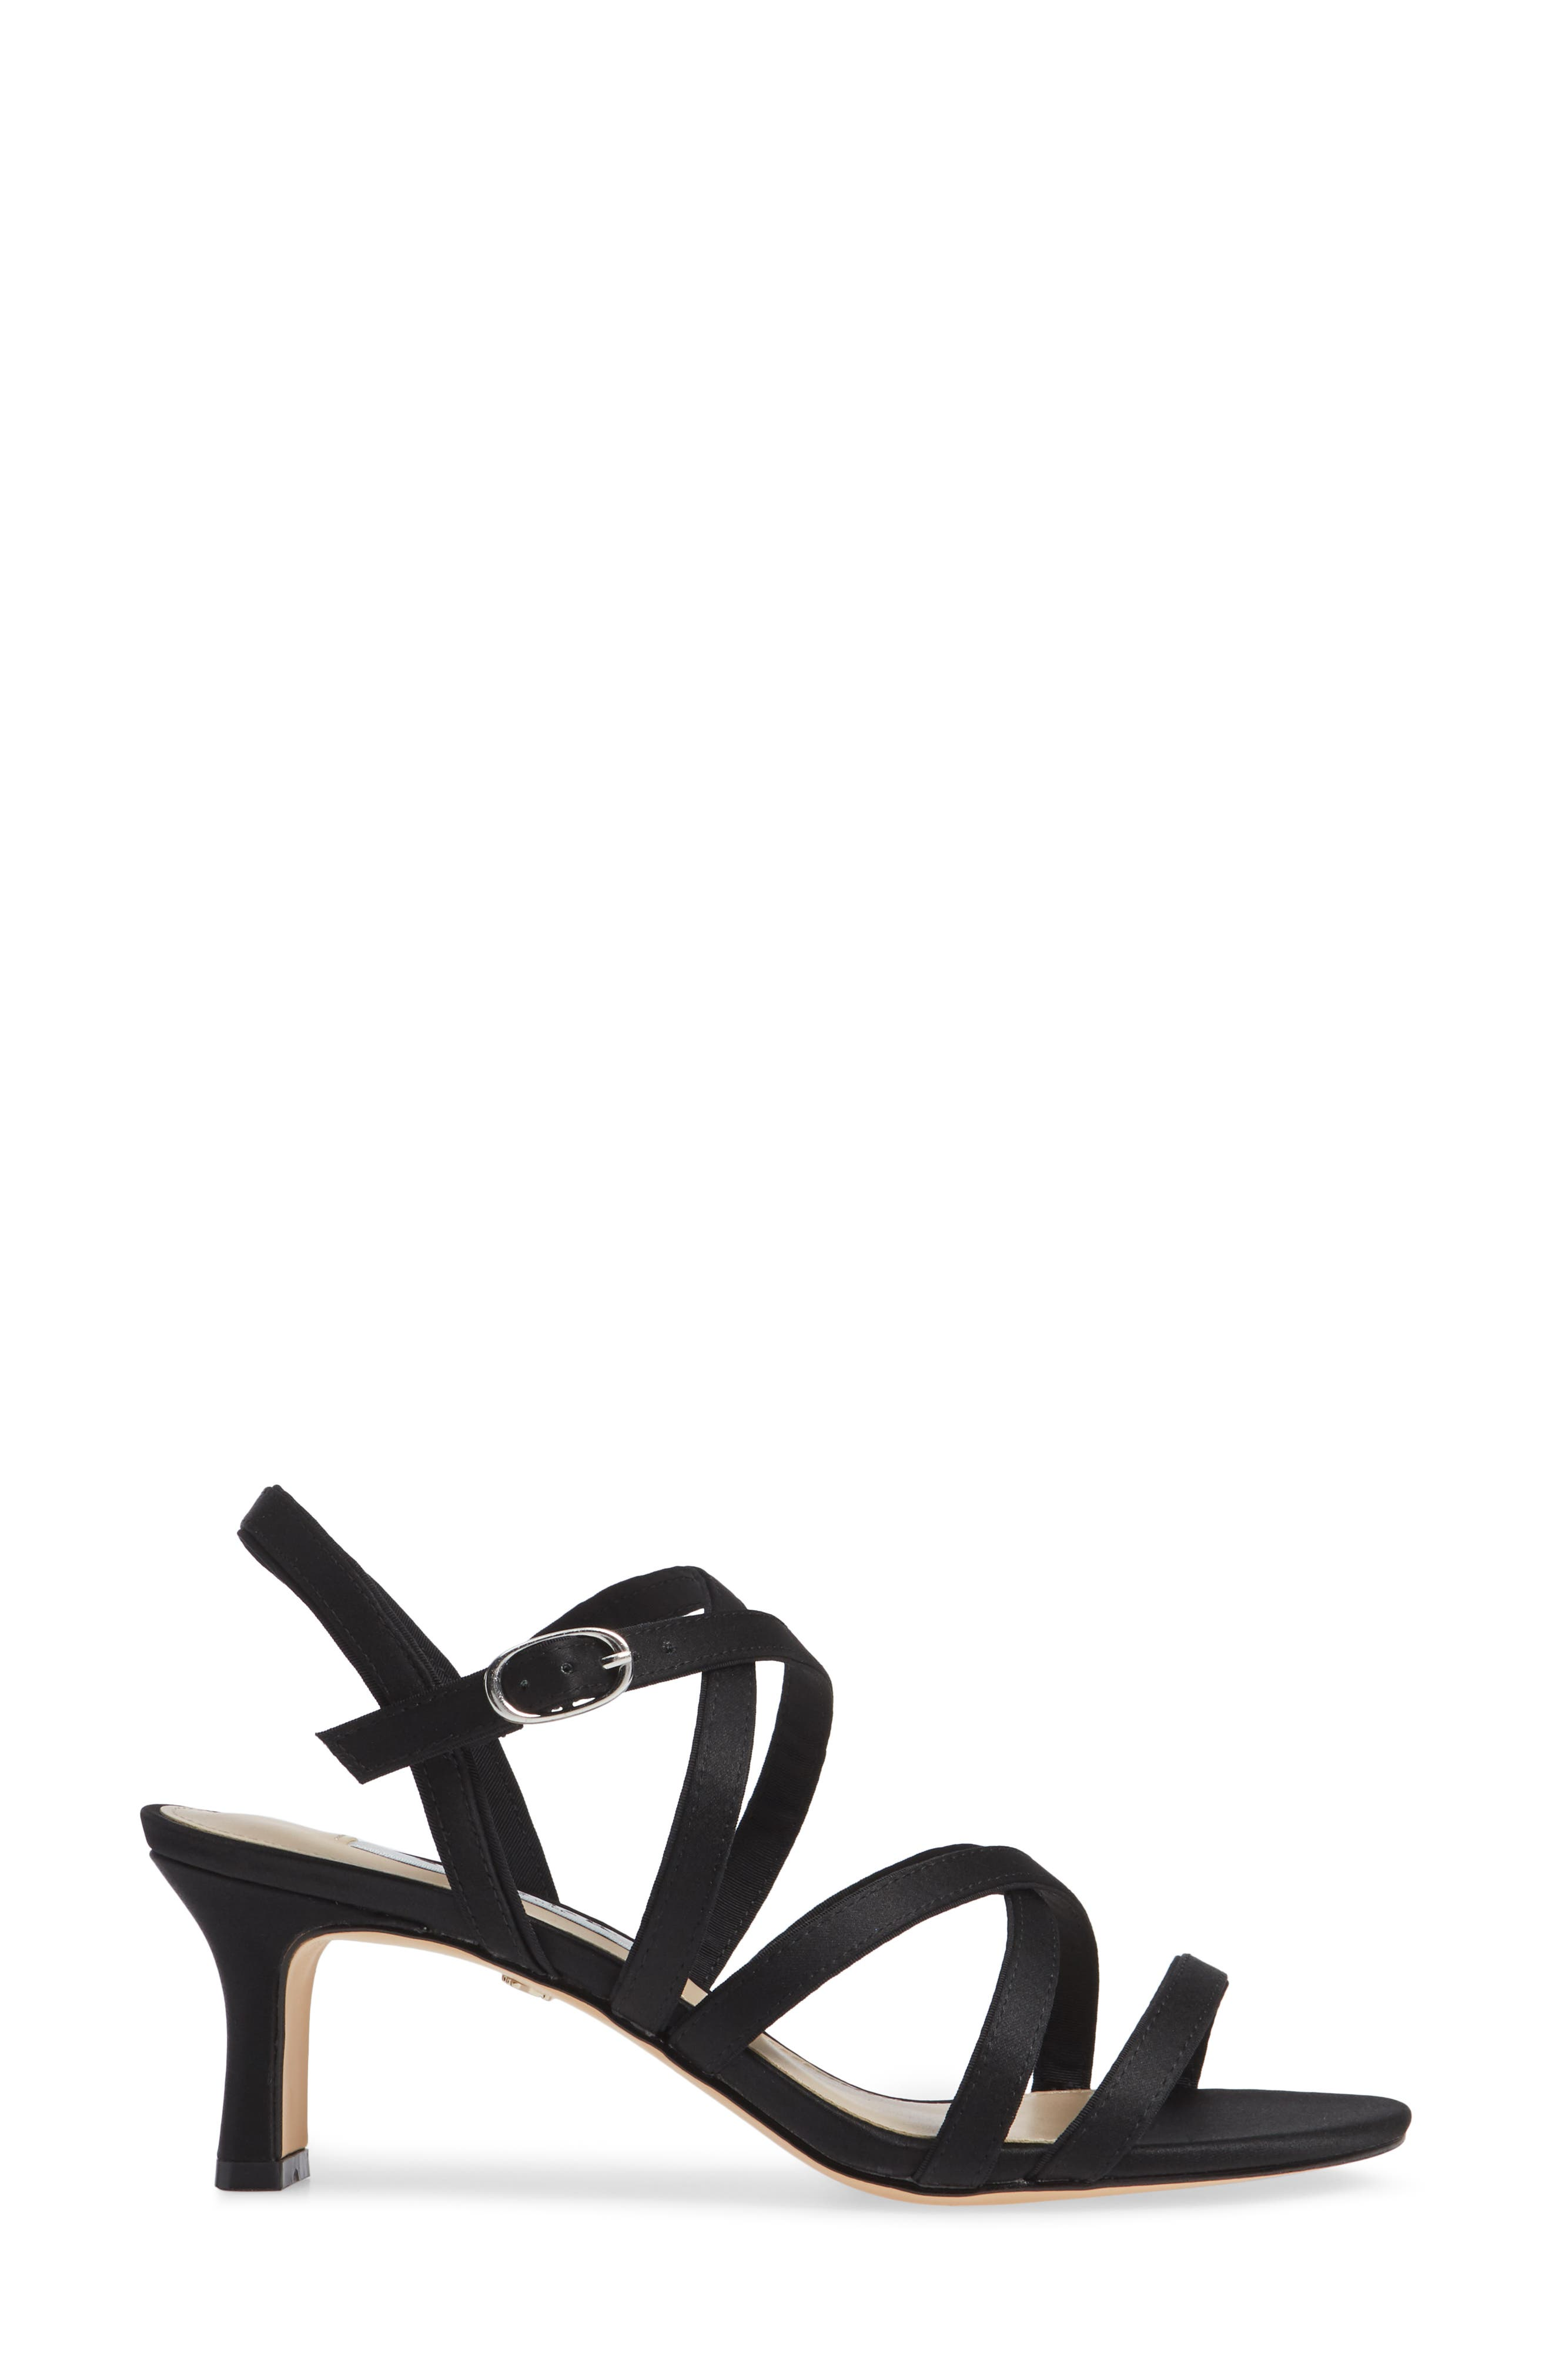 NINA, Genaya Strappy Evening Sandal, Alternate thumbnail 3, color, BLACK SATIN